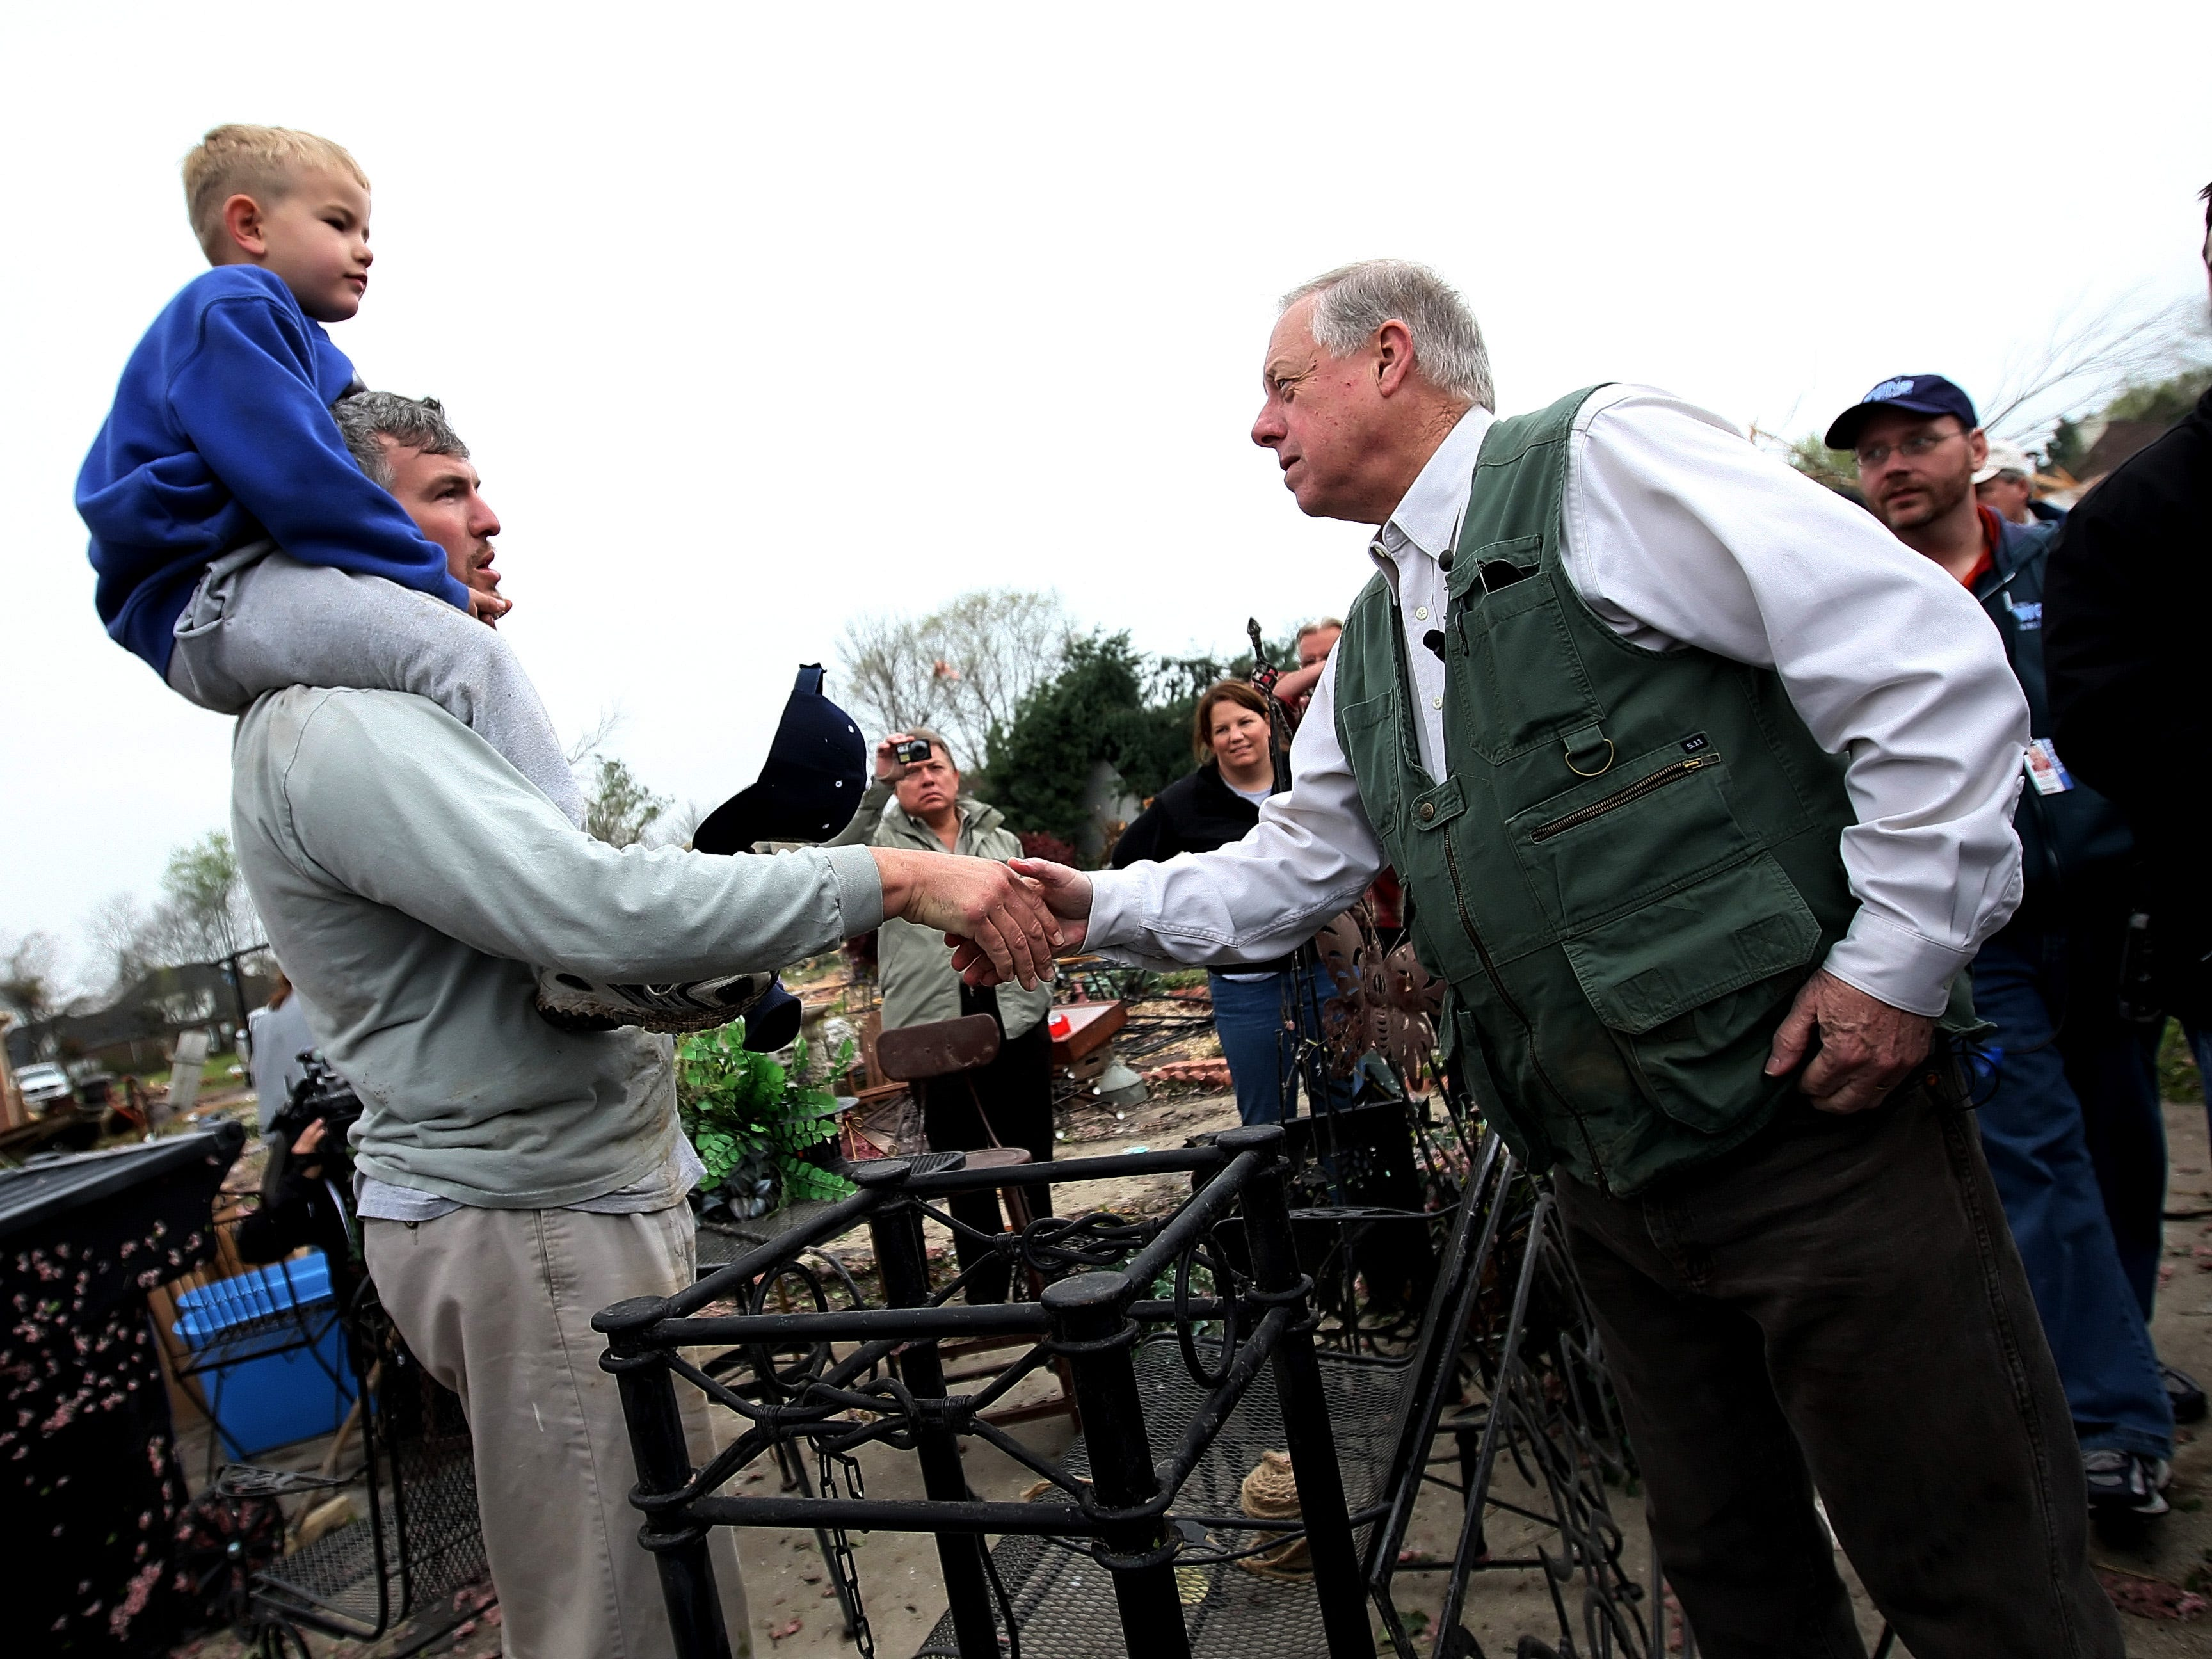 Tennessee Governor Phil Bredesen (right) shakes hands with William Busey and his son Jack Busey, 5, at the site of a home that was damaged by the tornado in Murfreesboro, Tennessee on Saturday April 11, 2009. Busey and his son were helping the home owner clean up. (Josh Anderson for The Tennessean)